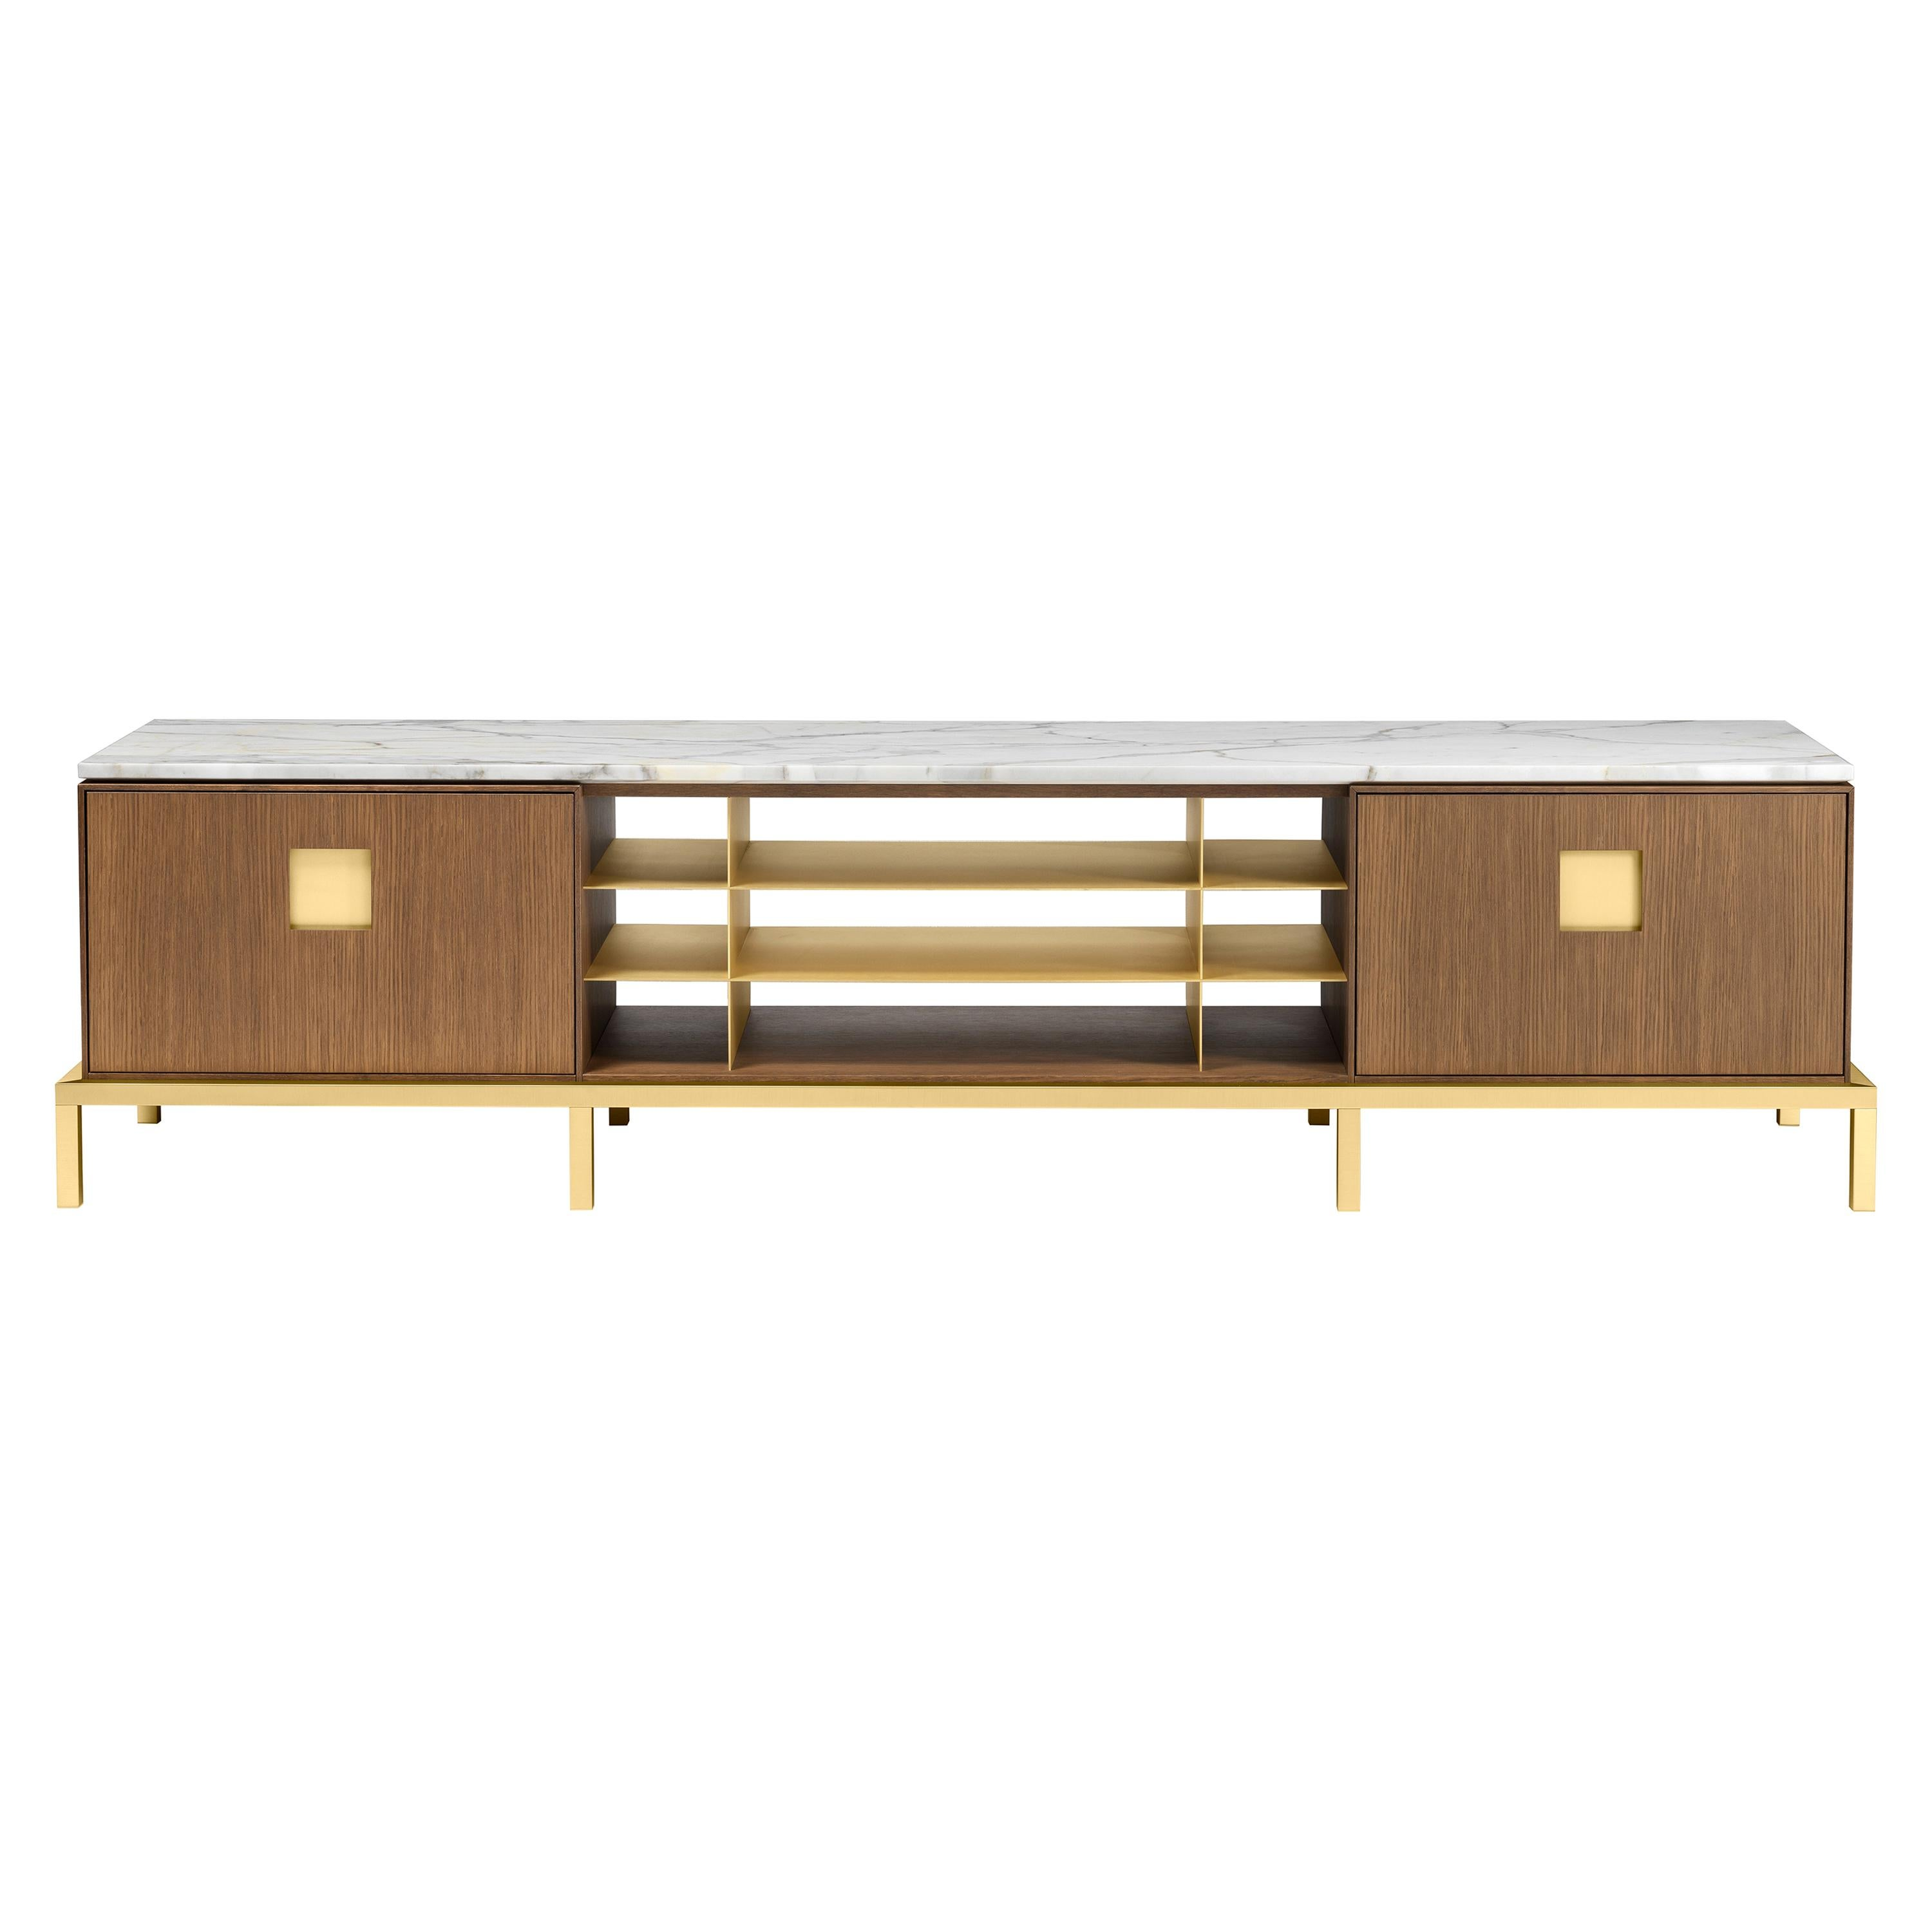 Zuan Living Cabinet with Satin Brass Legs & Calacatta Marble by Paolo Rizzatto